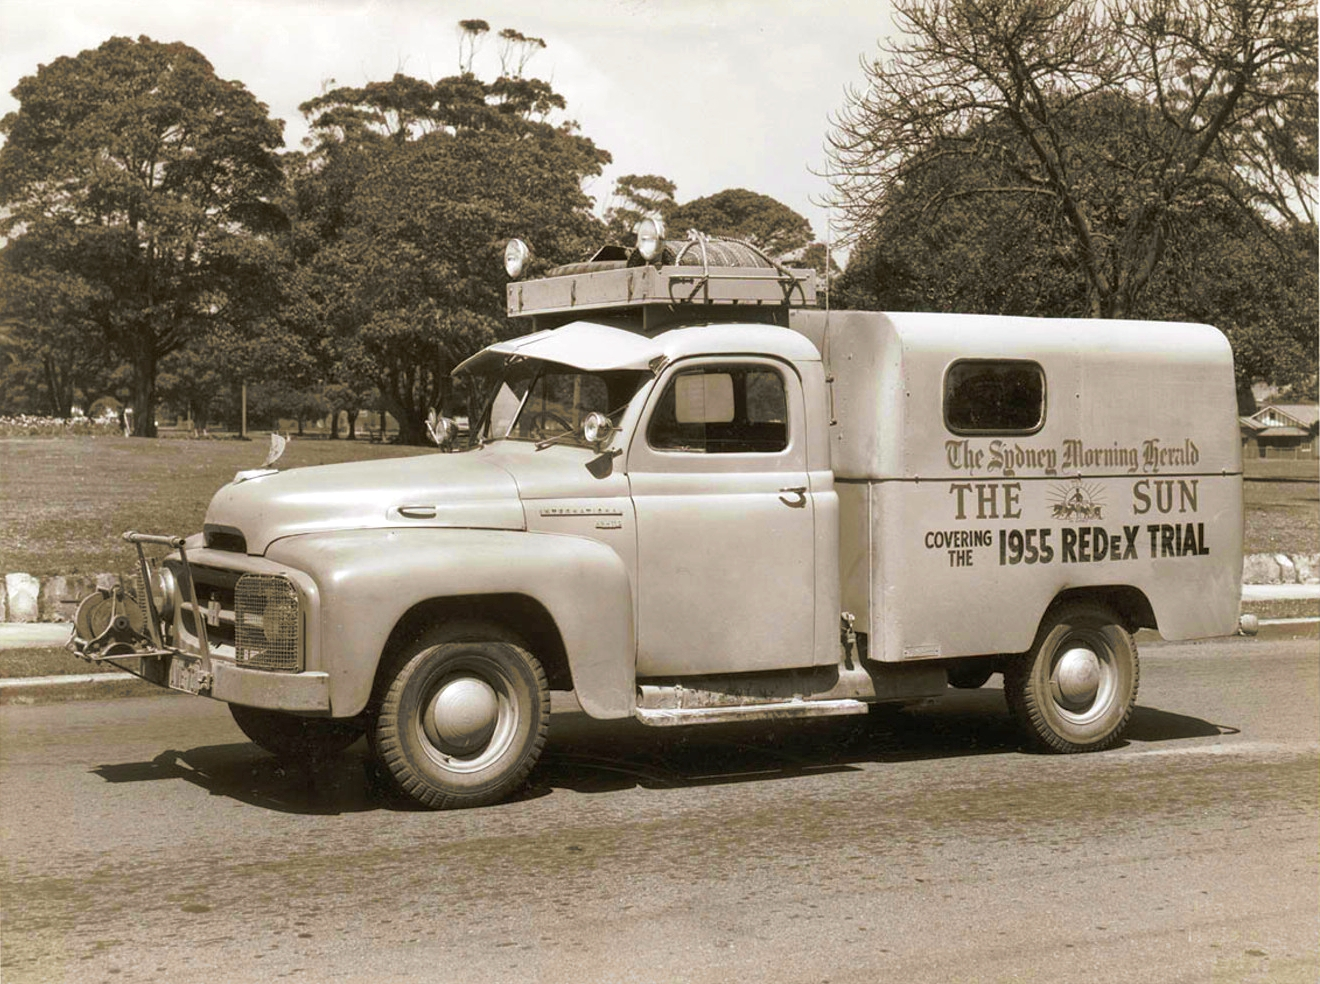 International Harvester Pickup Trucks http://transpressnz.blogspot.com/2011/10/1955-international-harvester-delivery.html